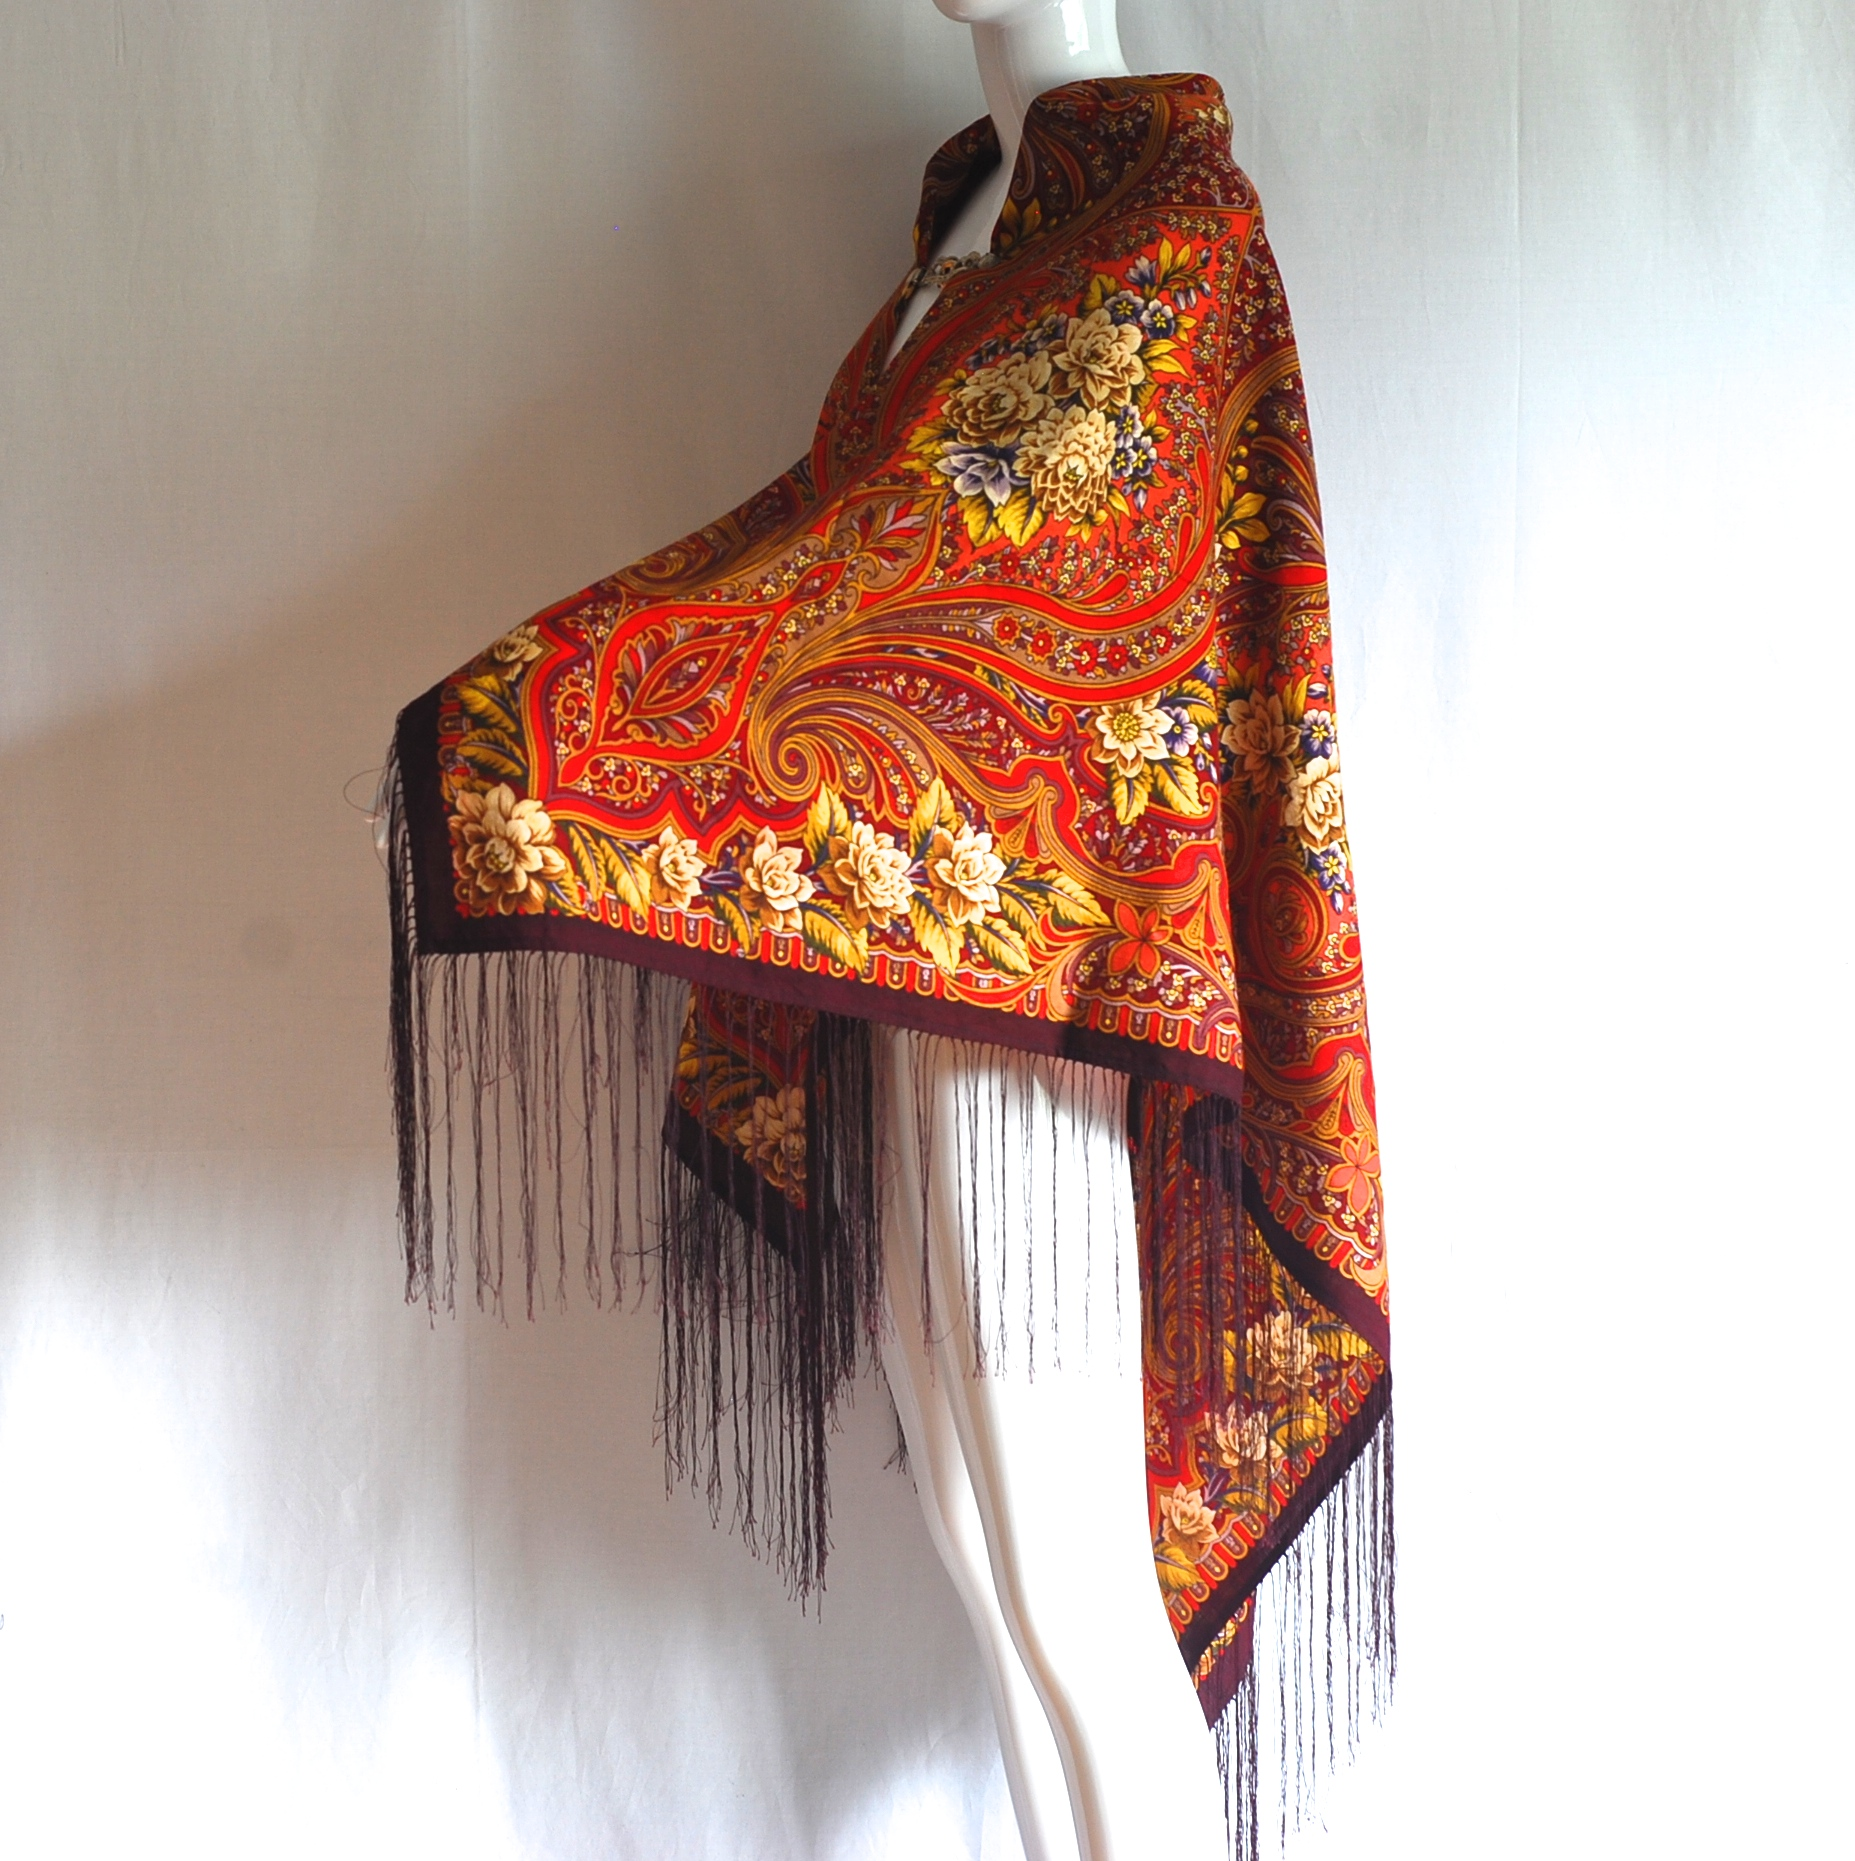 Stunning Fringed Wool Piano Shawl In Rich & Vibrant